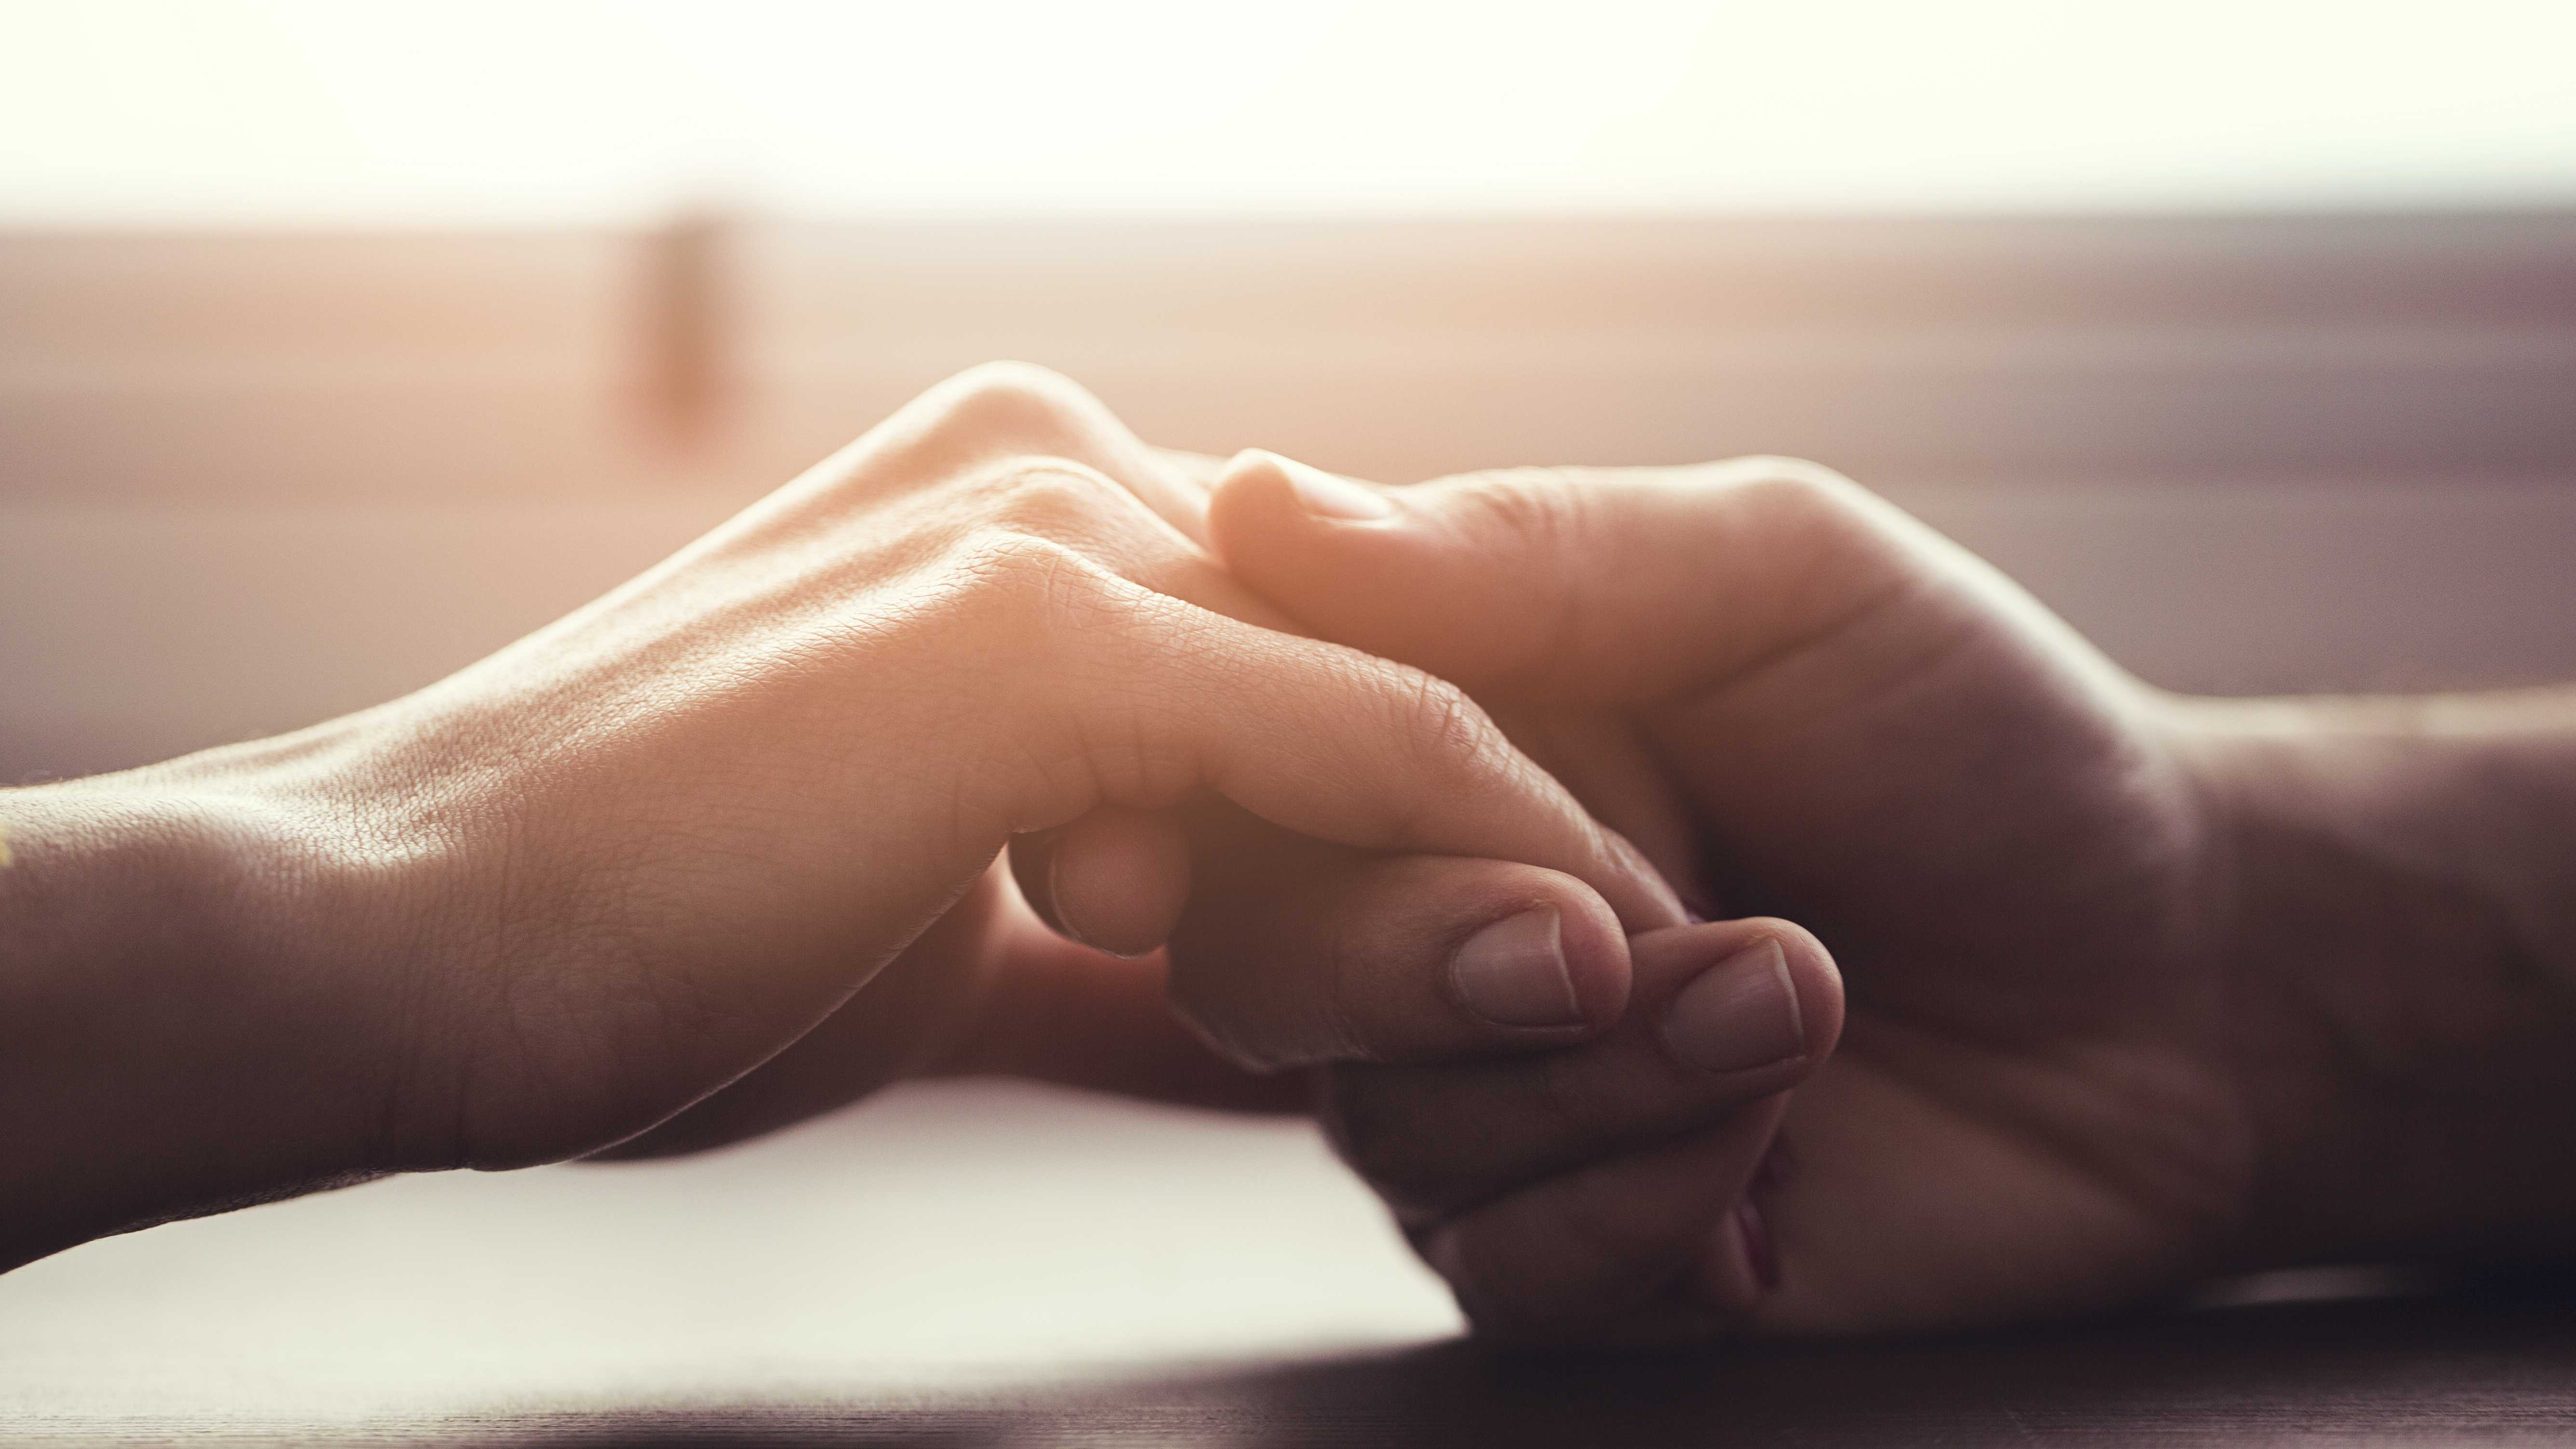 the healing power of touch, two hands touching